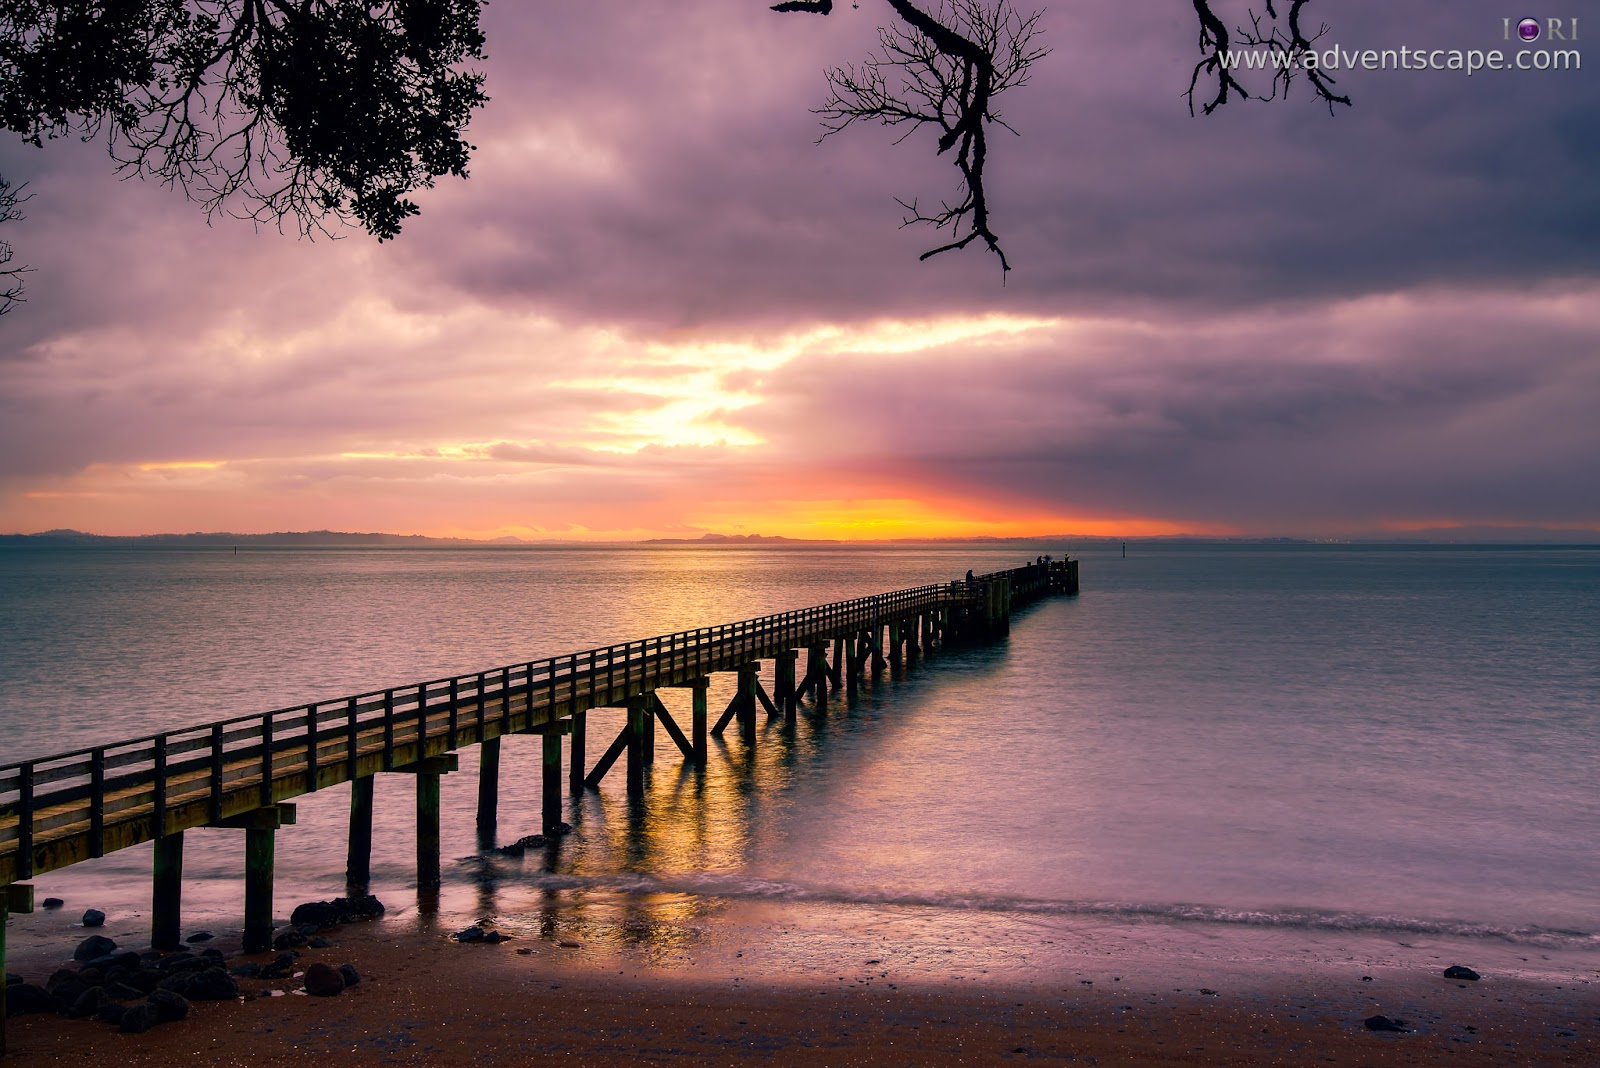 Philip Avellana, iori, adventscape, Cornwallis, jetty, seascape, landscape, North Island, New Zealand, fine art, sunrise, right side, camera right